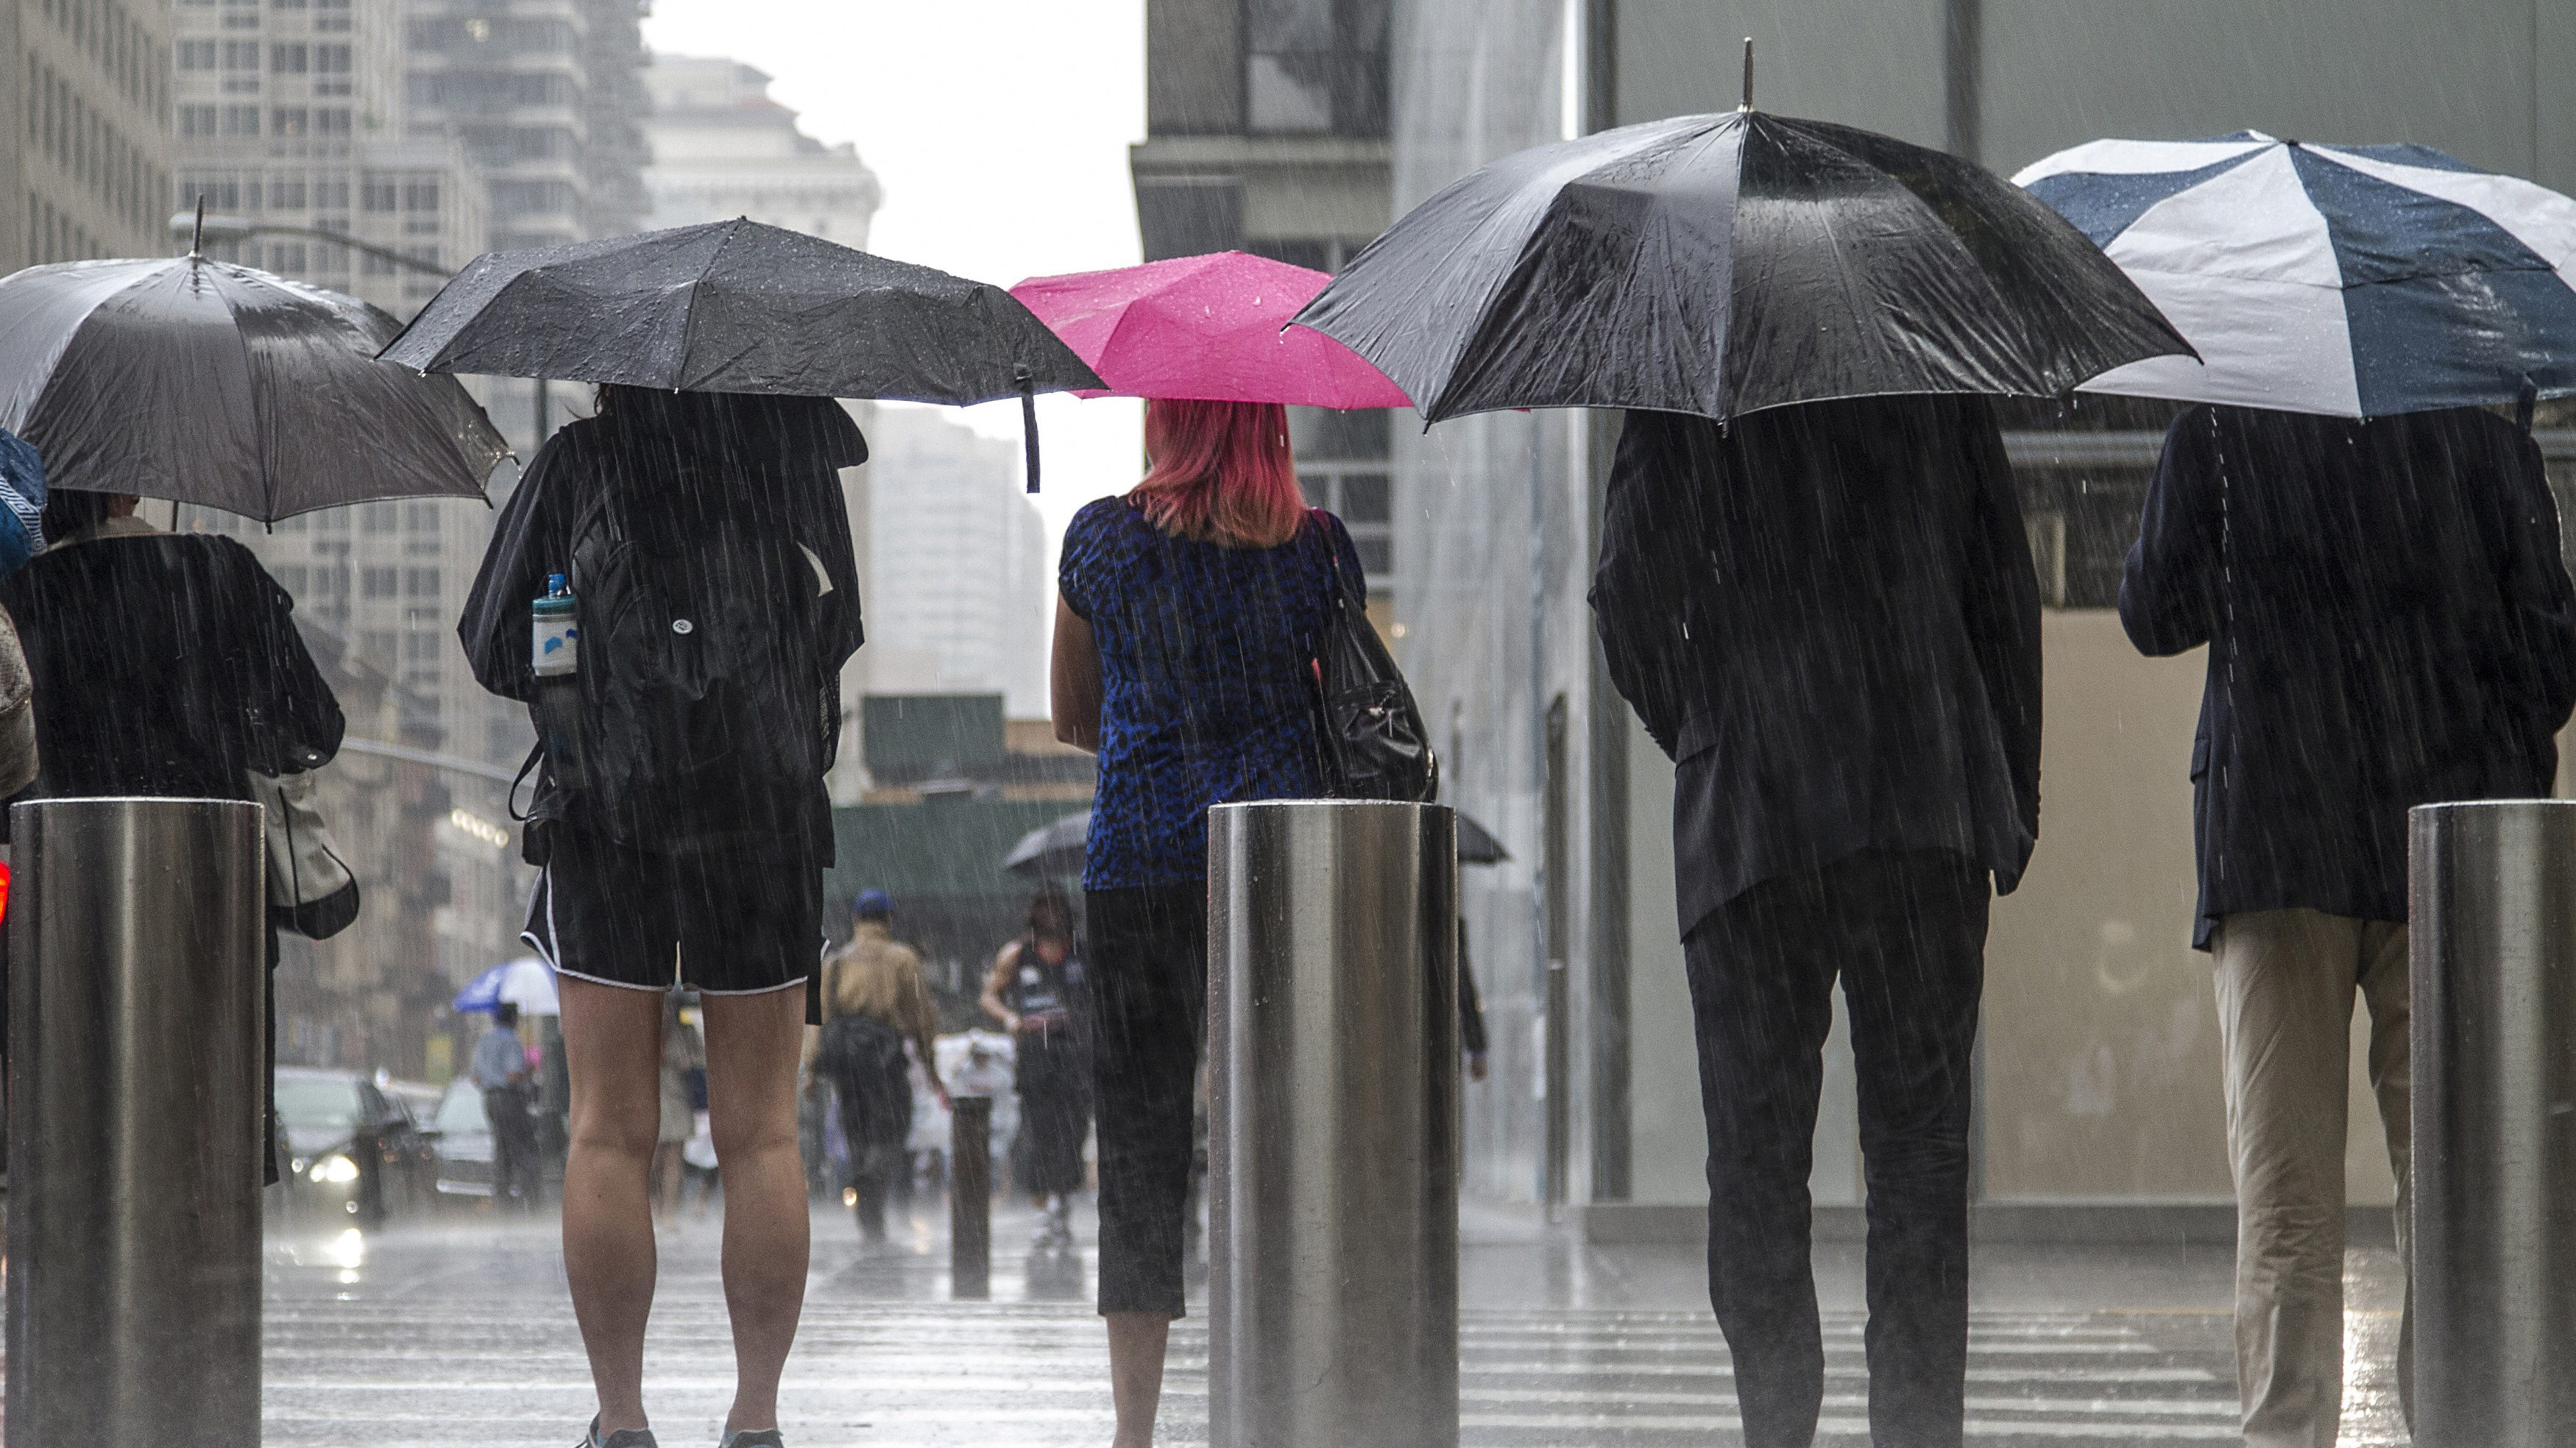 People use umbrellas as a downpour of rain falls during the afternoon rush hour in New York